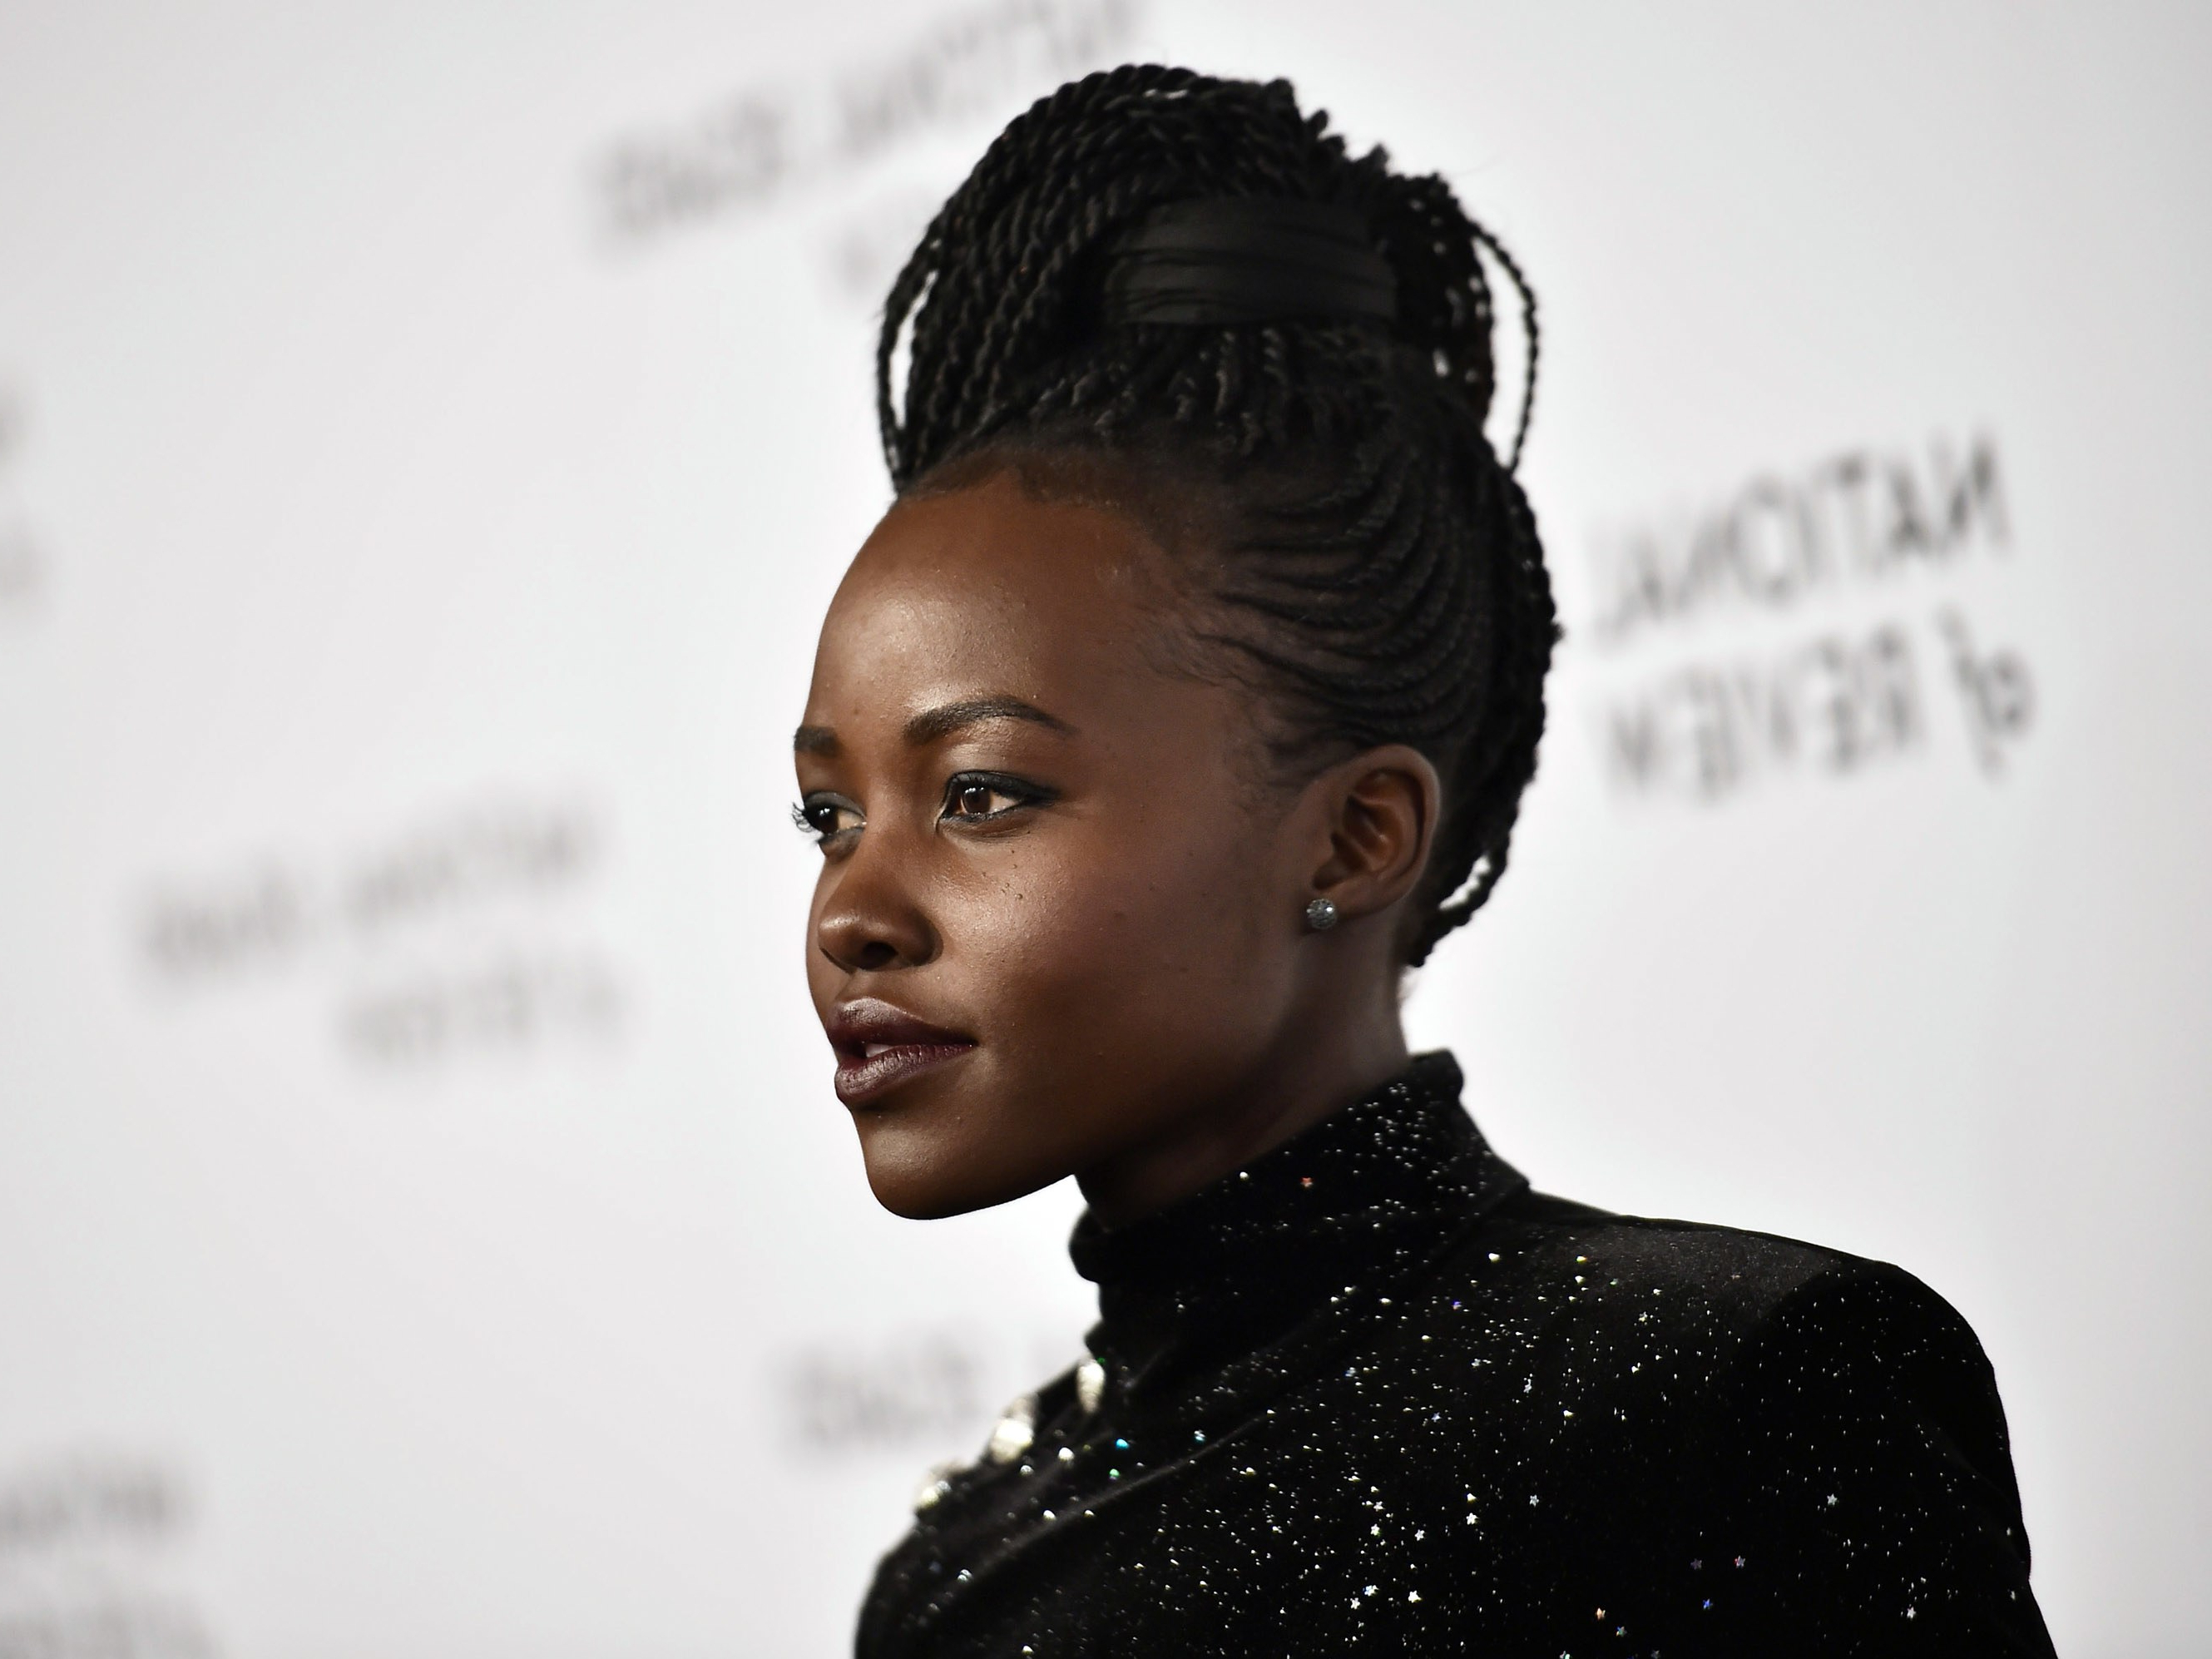 Lupita Nyong'o Steps Out In Gorgeous Senegalese Twist Regarding Best And Newest Side Parted Micro Twist Hairstyles (View 13 of 20)